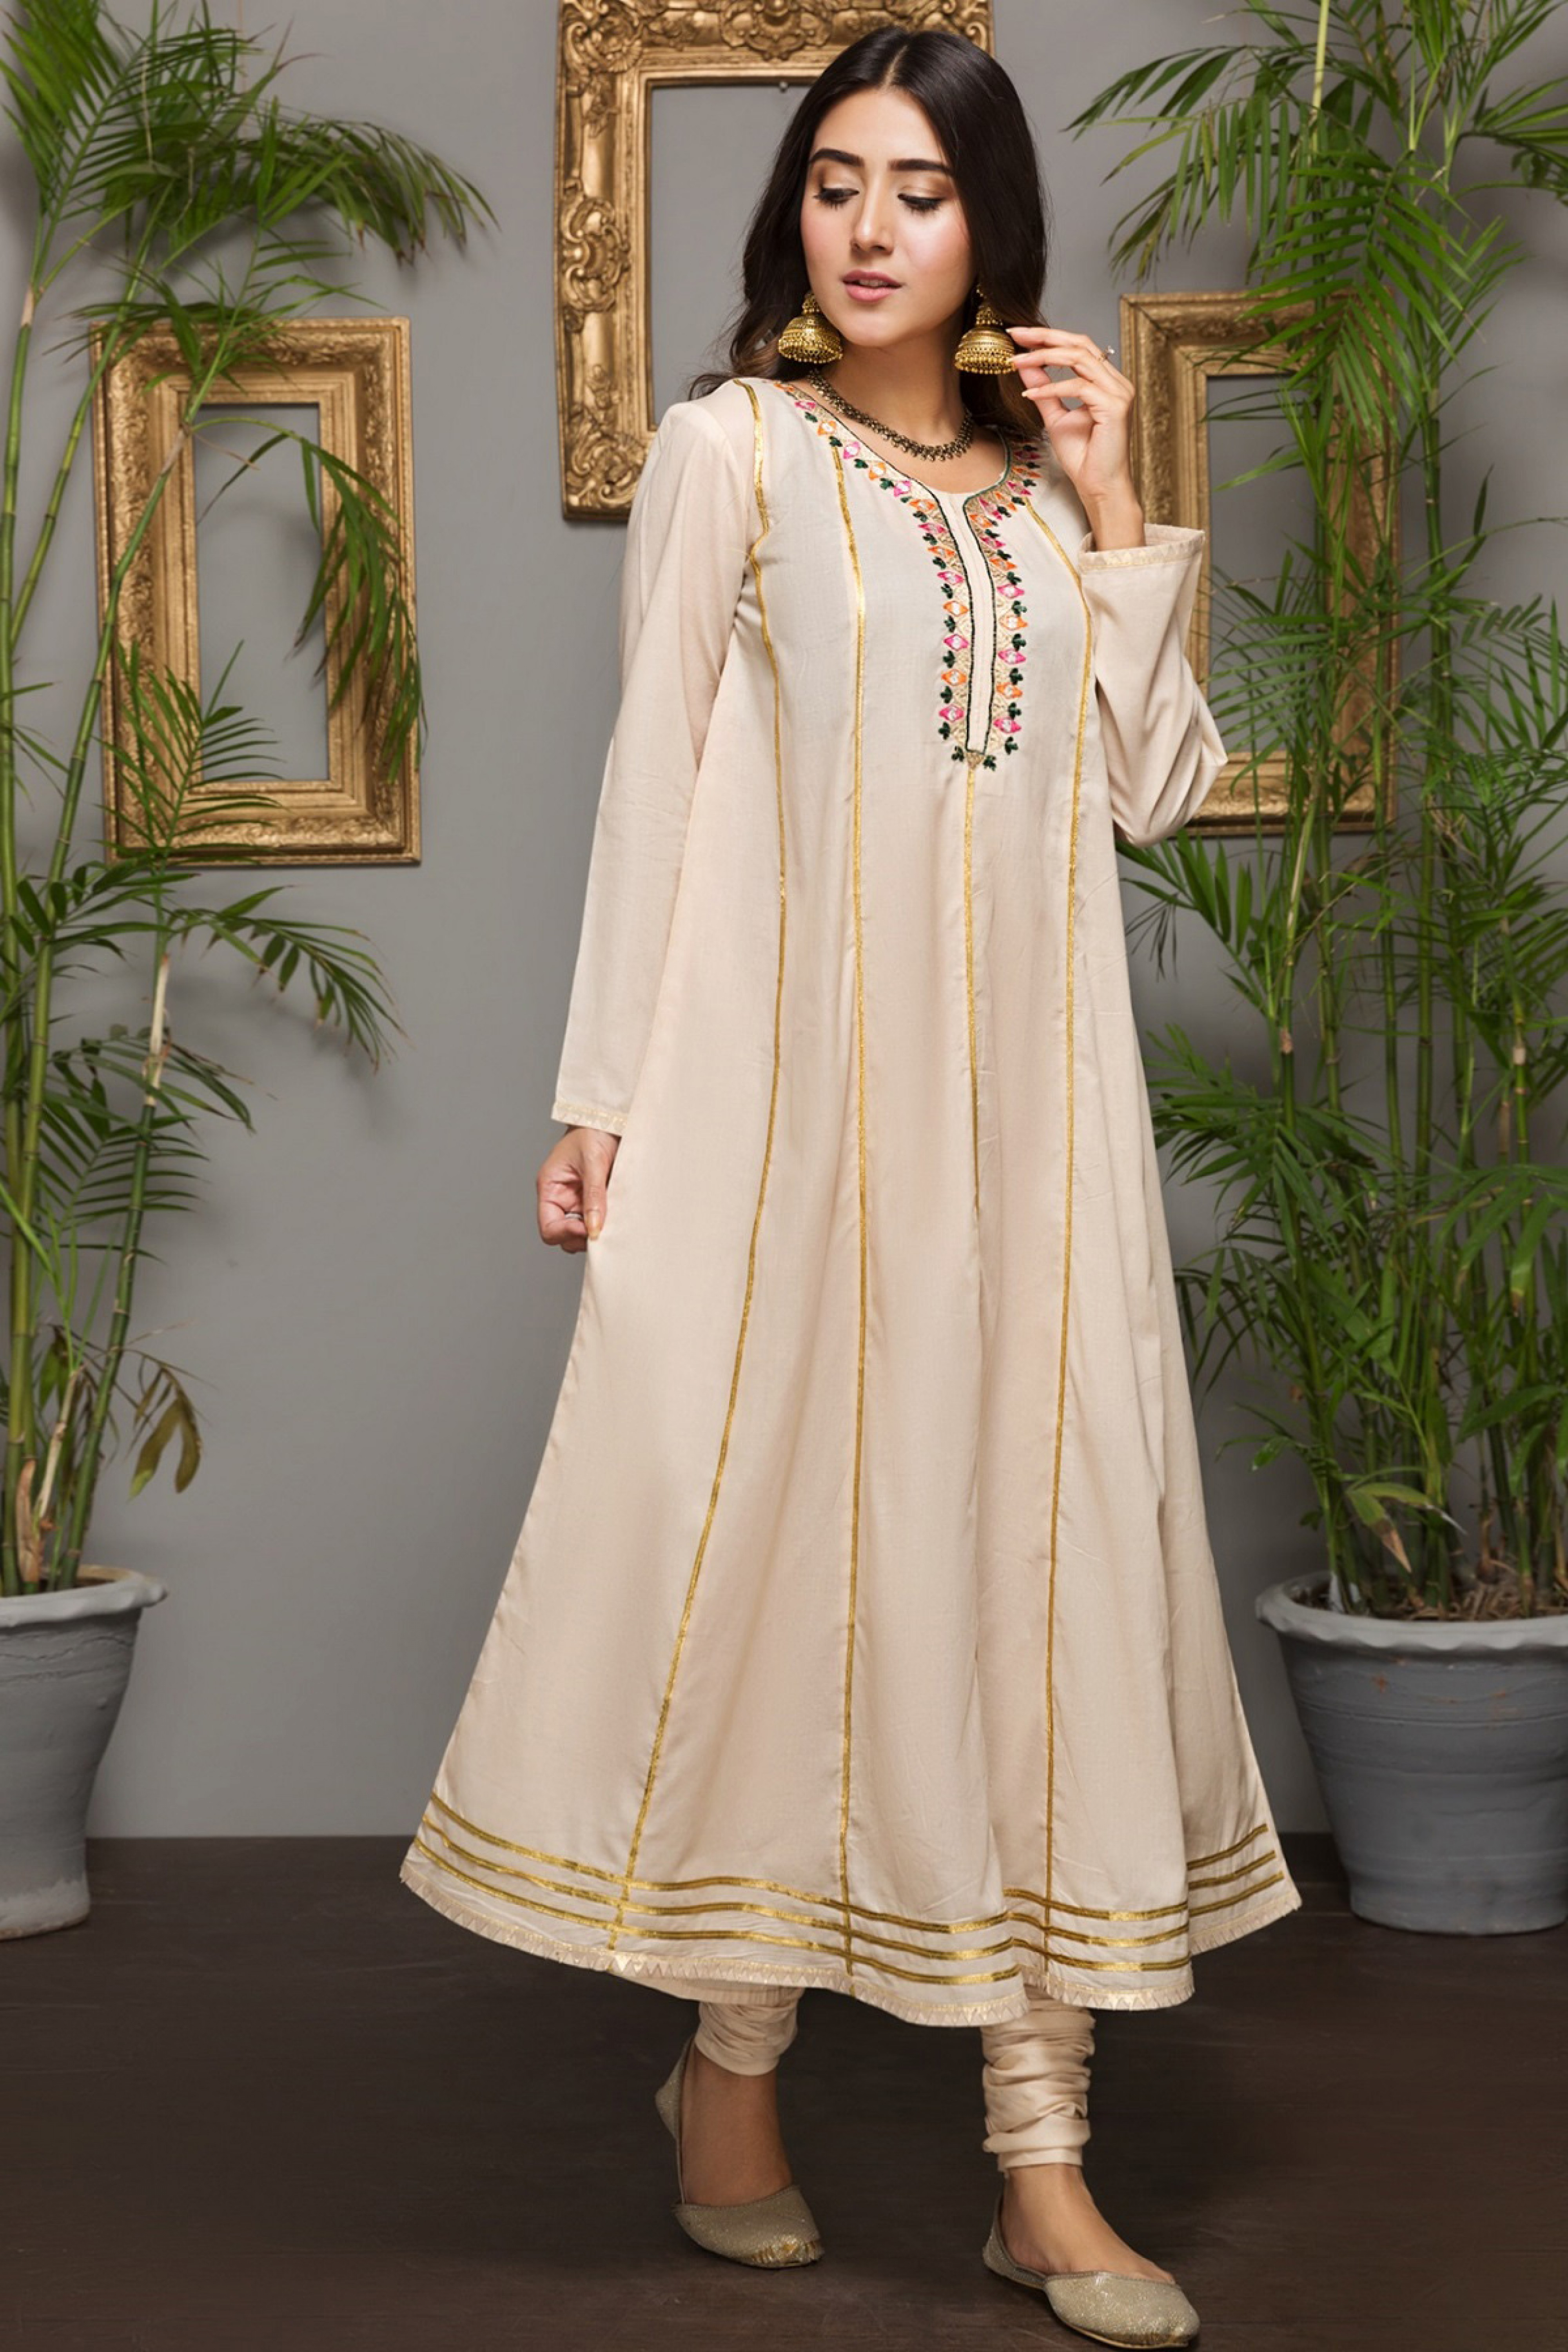 WHITE ROSE (Embroidered Frock)